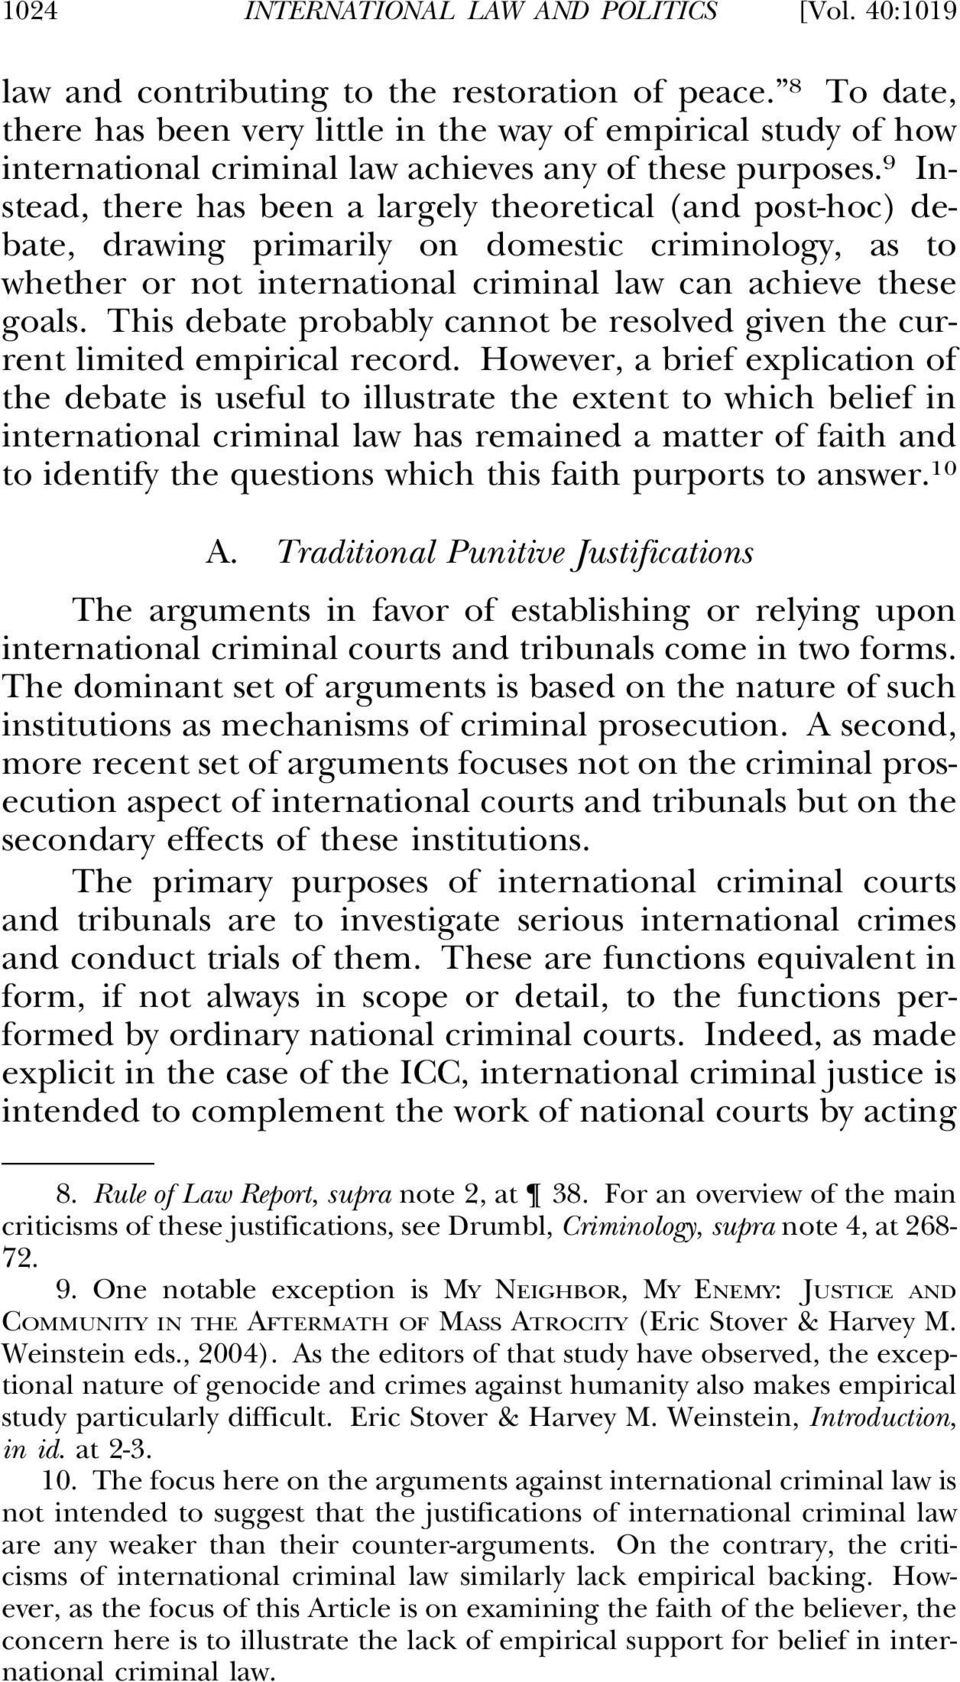 9 Instead, there has been a largely theoretical (and post-hoc) debate, drawing primarily on domestic criminology, as to whether or not international criminal law can achieve these goals.